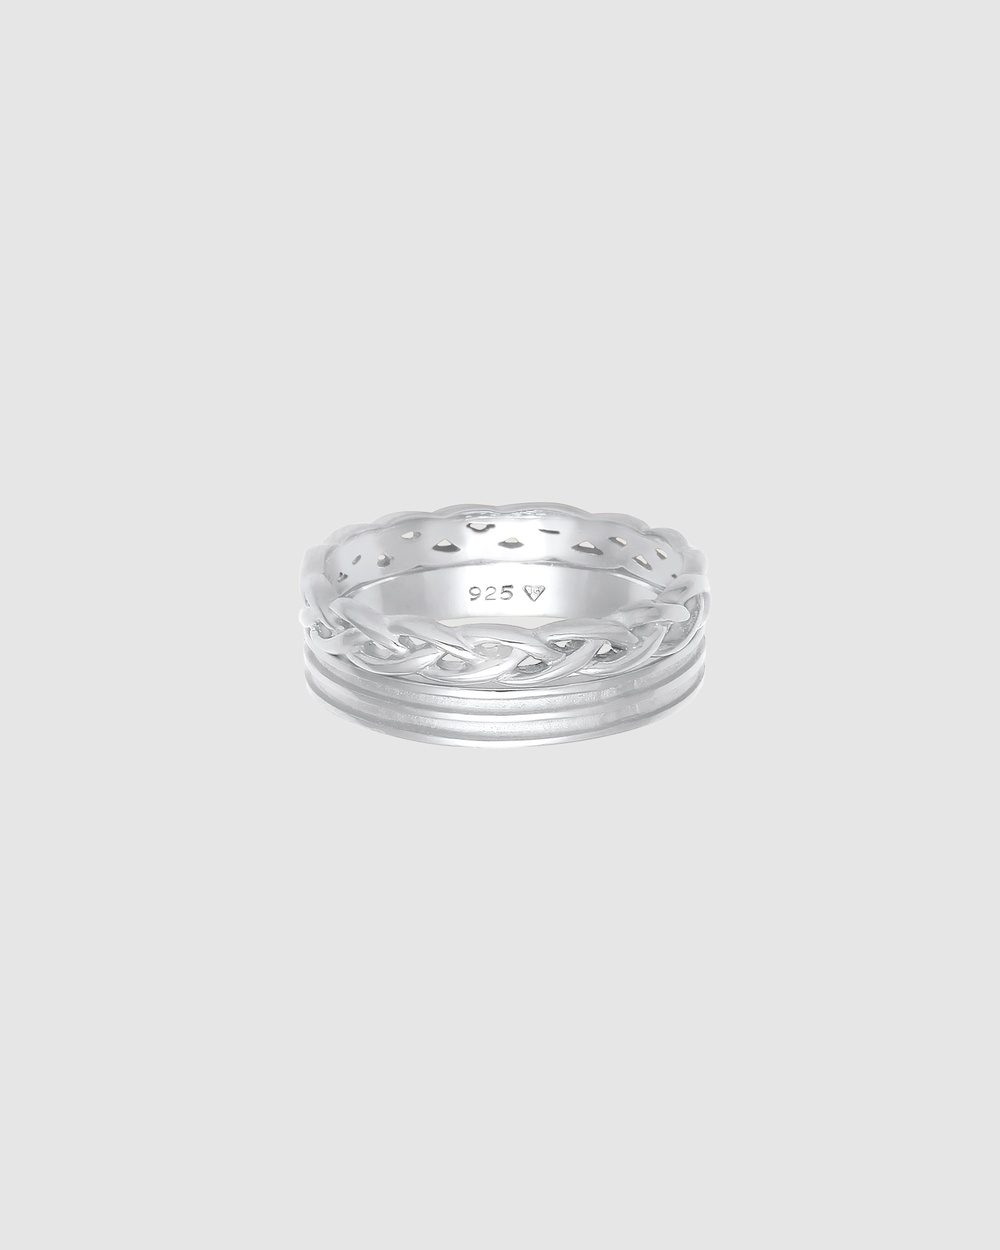 Elli Jewelry Ring Bandring Basic Plait Knot 2 pcs. Set in 925 Sterling Silver Jewellery Silver